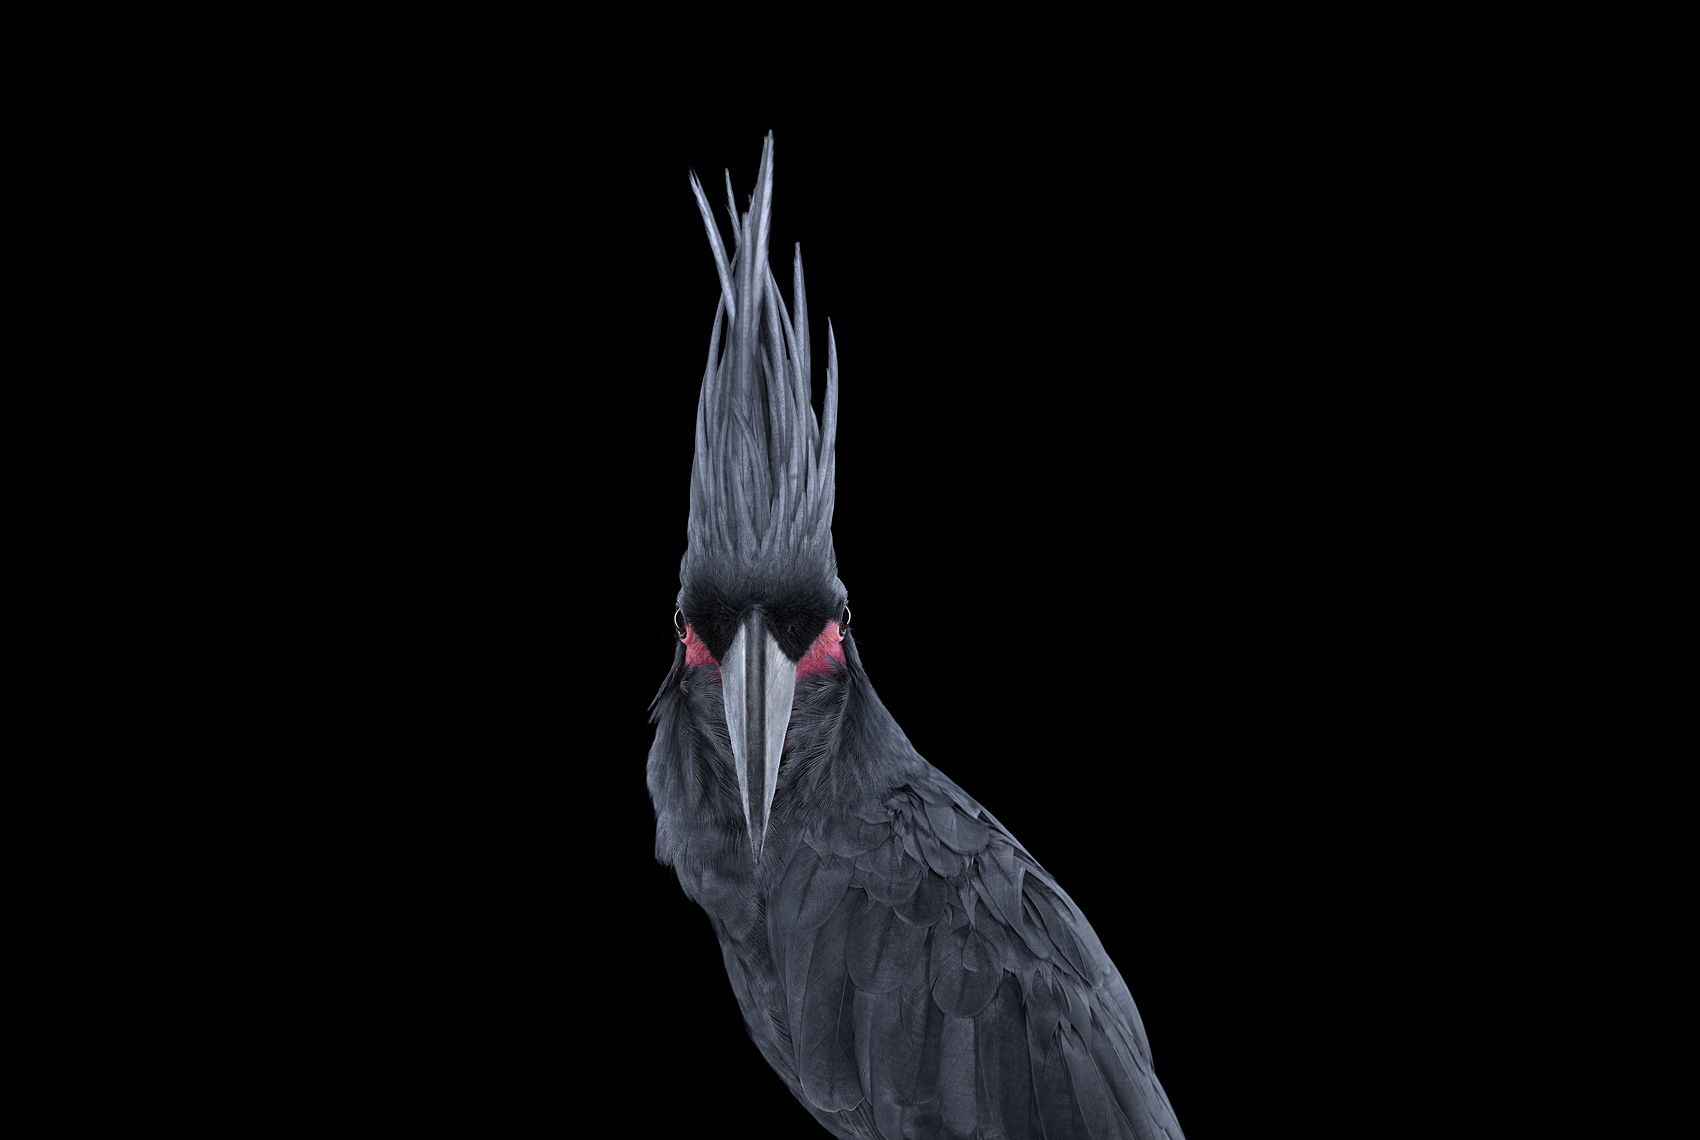 Palm Cockatoo #2, Los Angeles, CA, 2016,Brad Wilson,Photographie